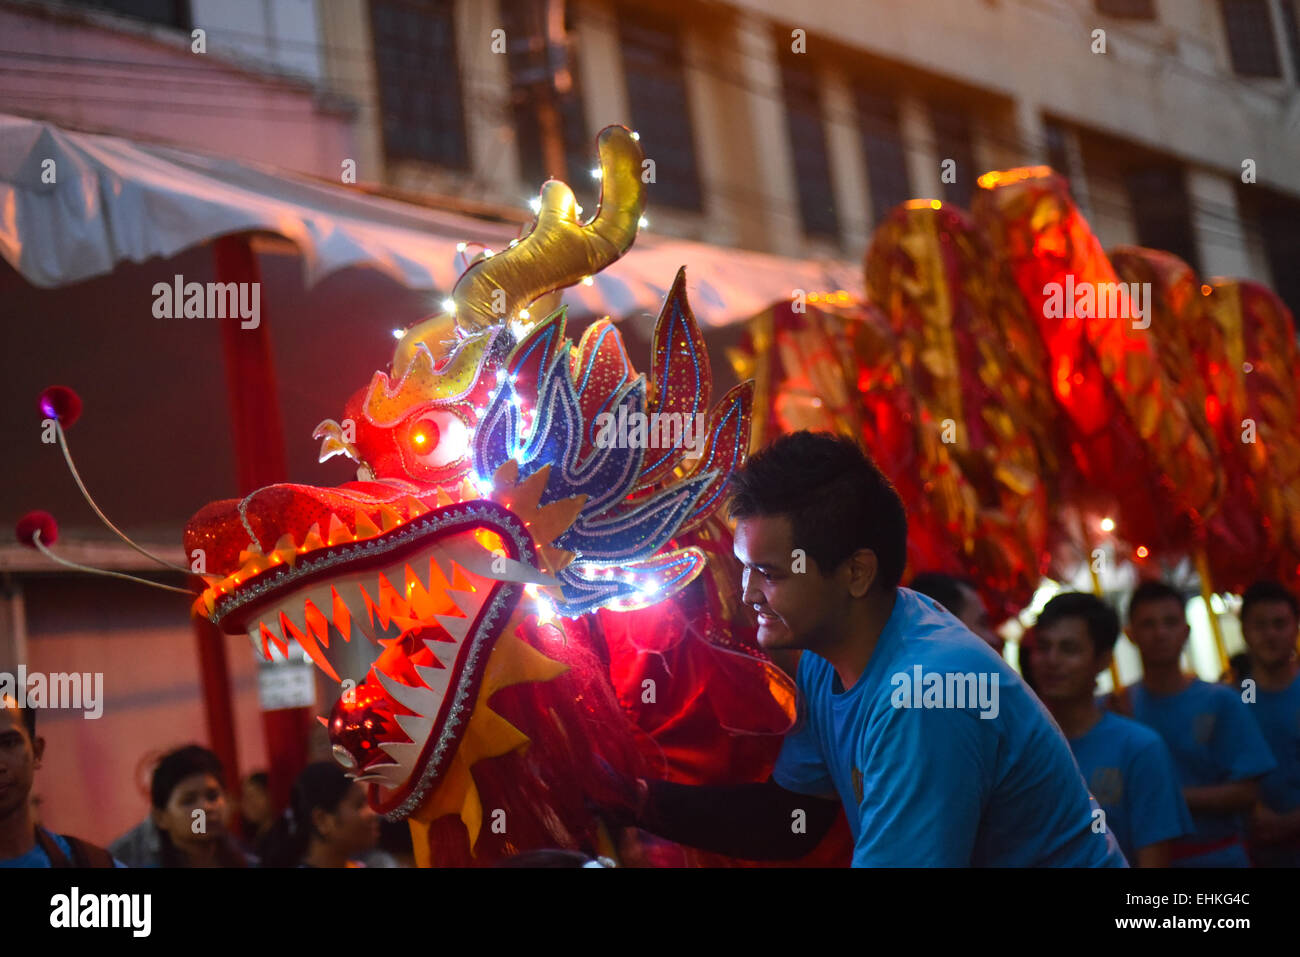 Liong (Drache)-Tanz-Performance bei Cap Go Meh (Laternenfest) in ...